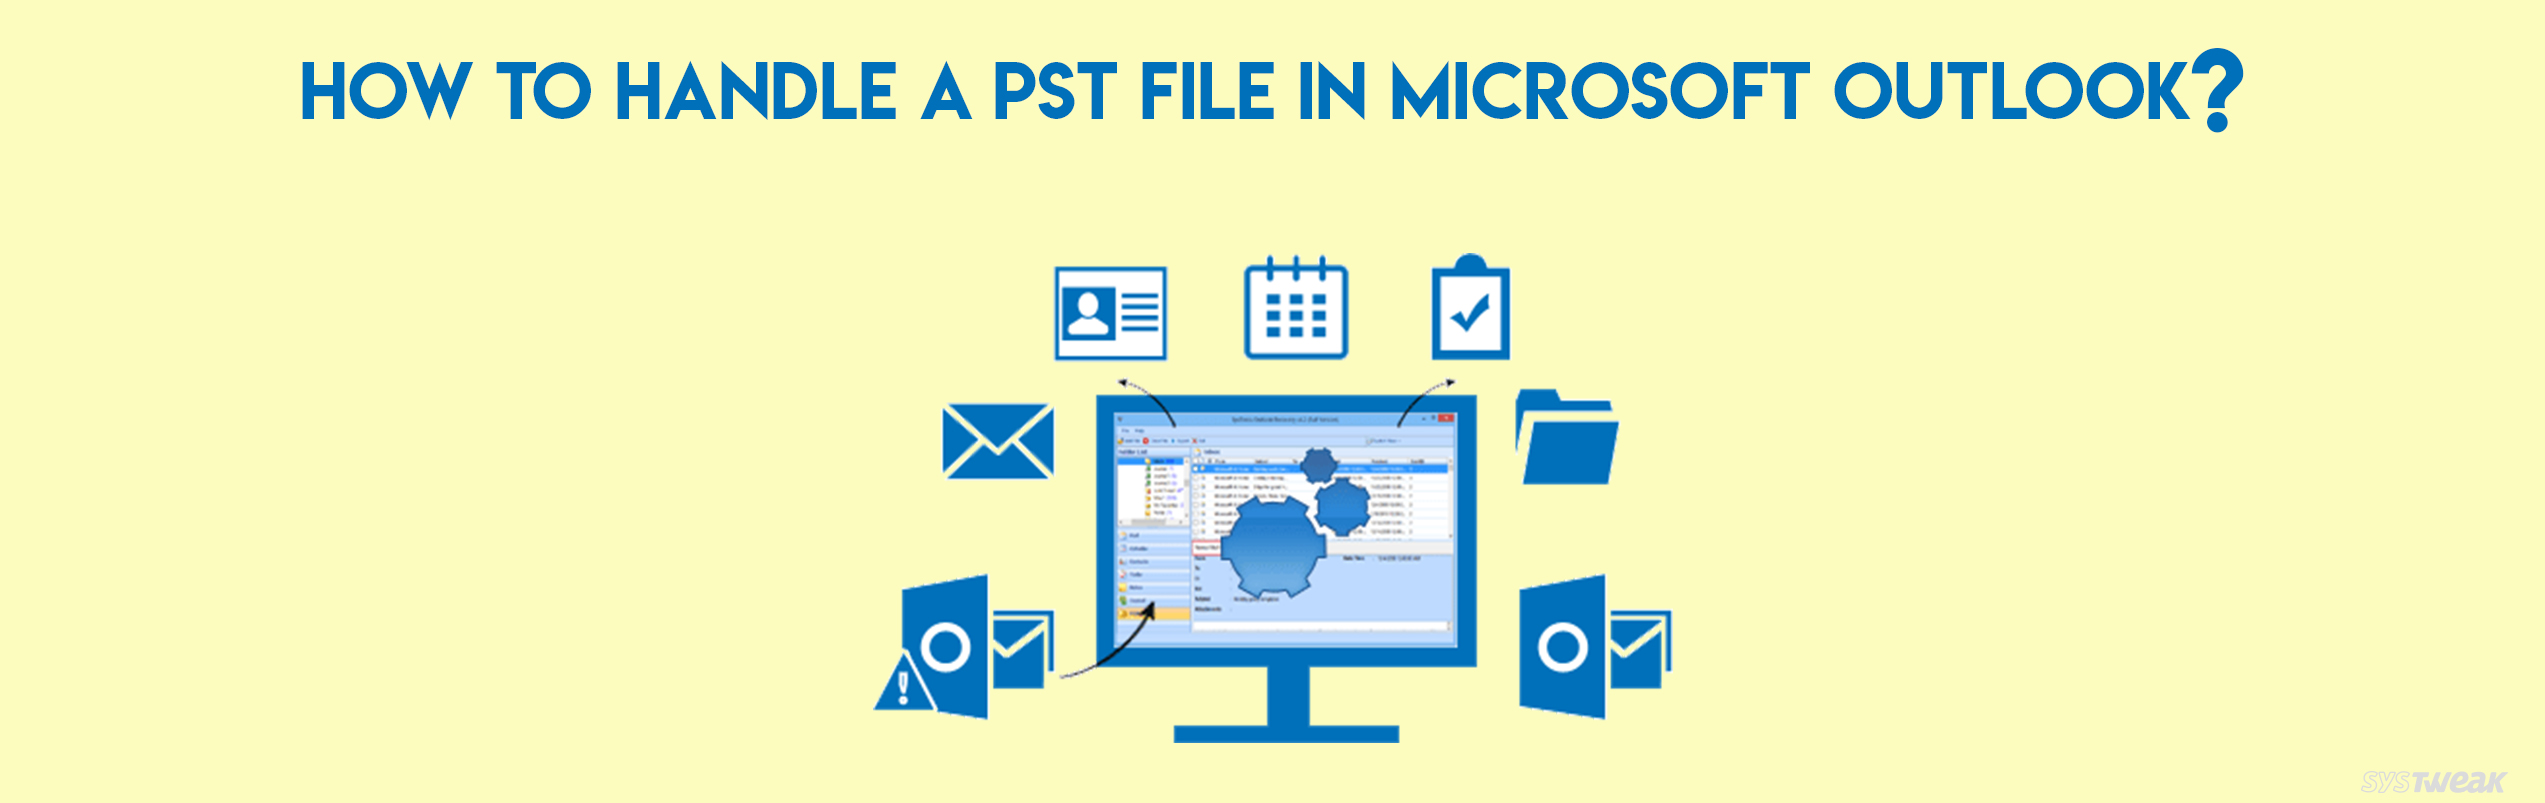 How To Manage PST file in Microsoft Outlook